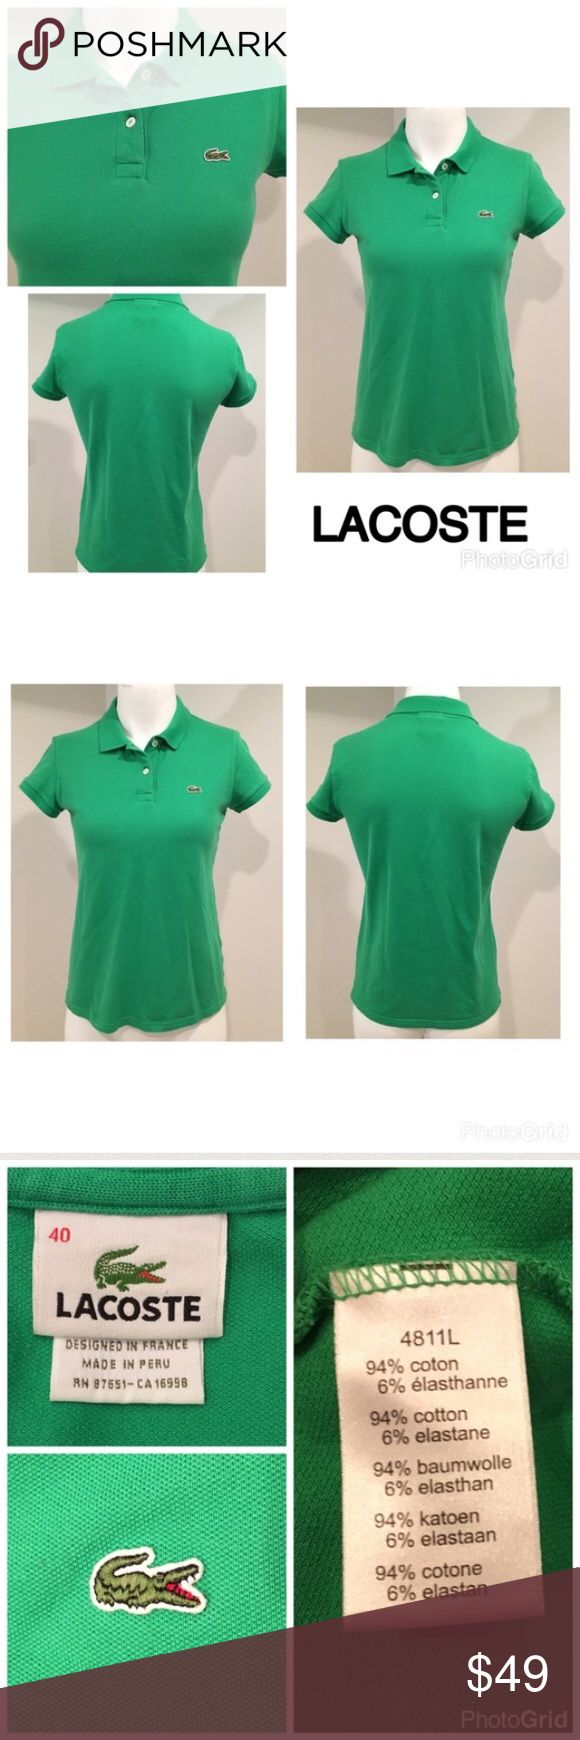 "🌸 Lacoste Women's 40 Polo SS Green Golf Shirt Lacoste Women's 40 Polo Short Sleeve Green Basic Collared Golf   ▫️Bust 18"" (armpit to armpit)   ▫️No stains  ▫️No holes  ▫️Light wear  🛍For the best deal, I offer a bundle discount! Please check out my closet for other fabulous items!🛍 Lacoste Tops"